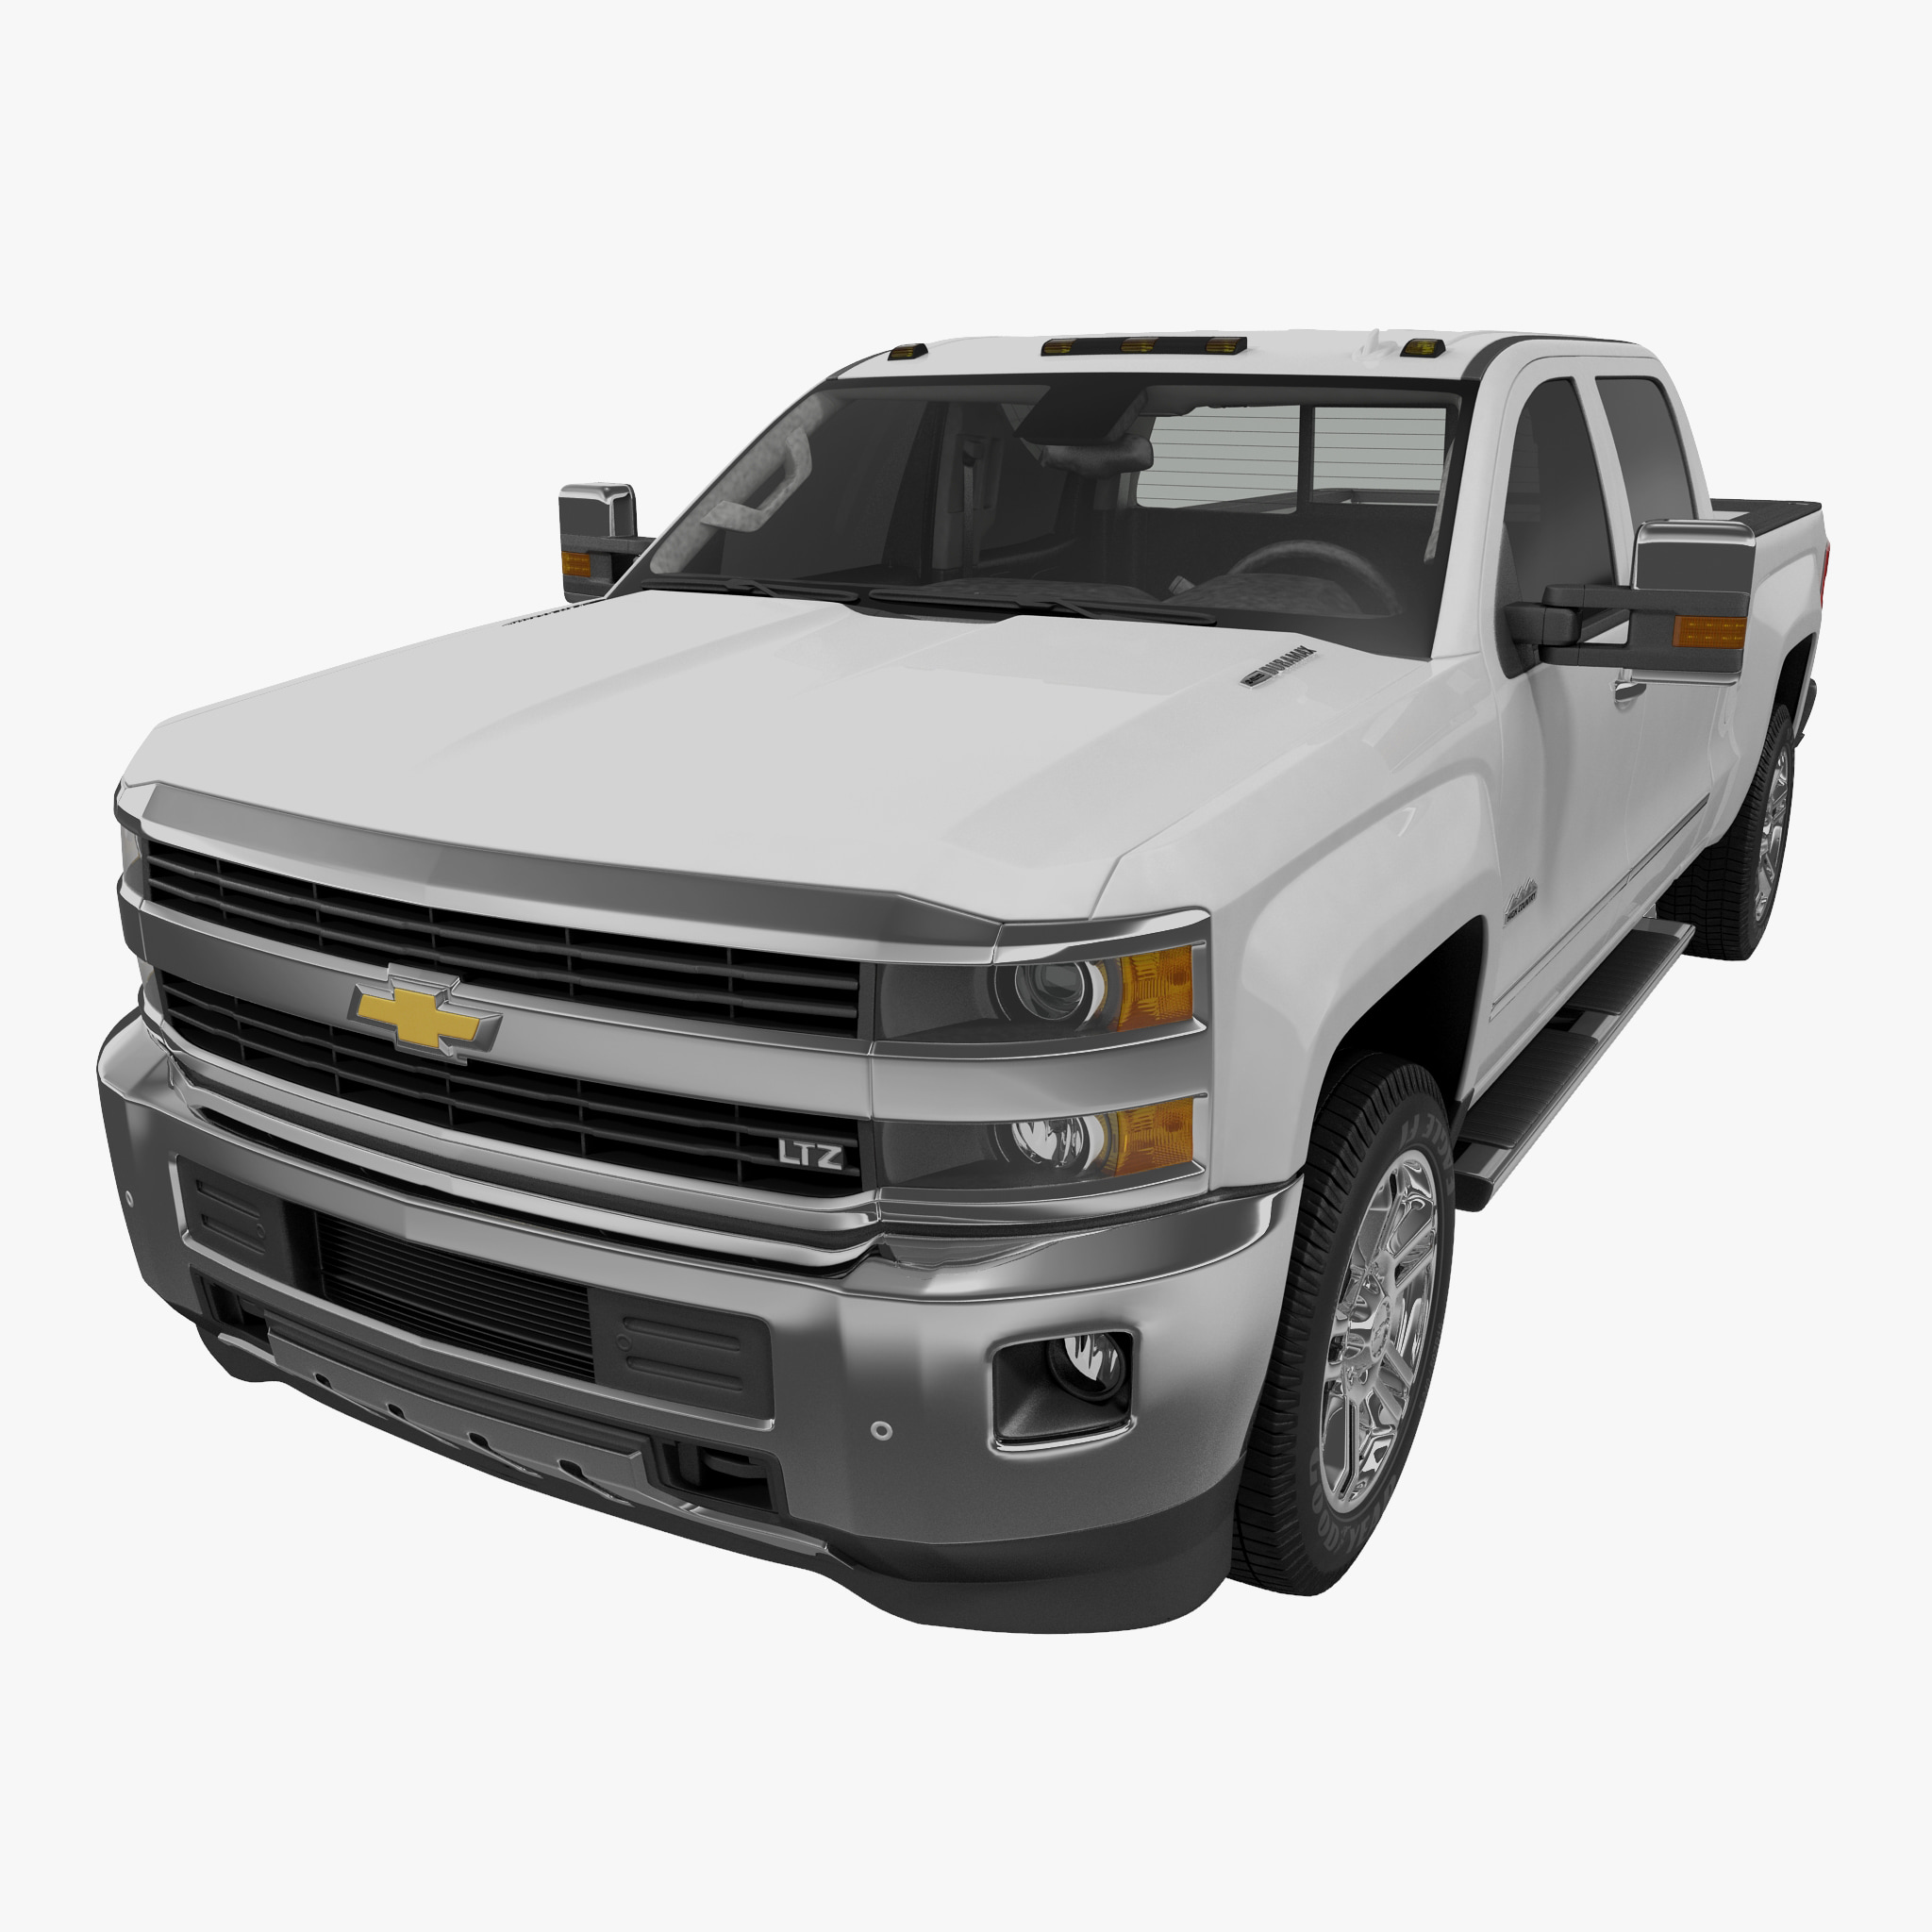 Chevrolet Silverado 3500HD 2015 High Country Pickup Without Interior_1.jpg